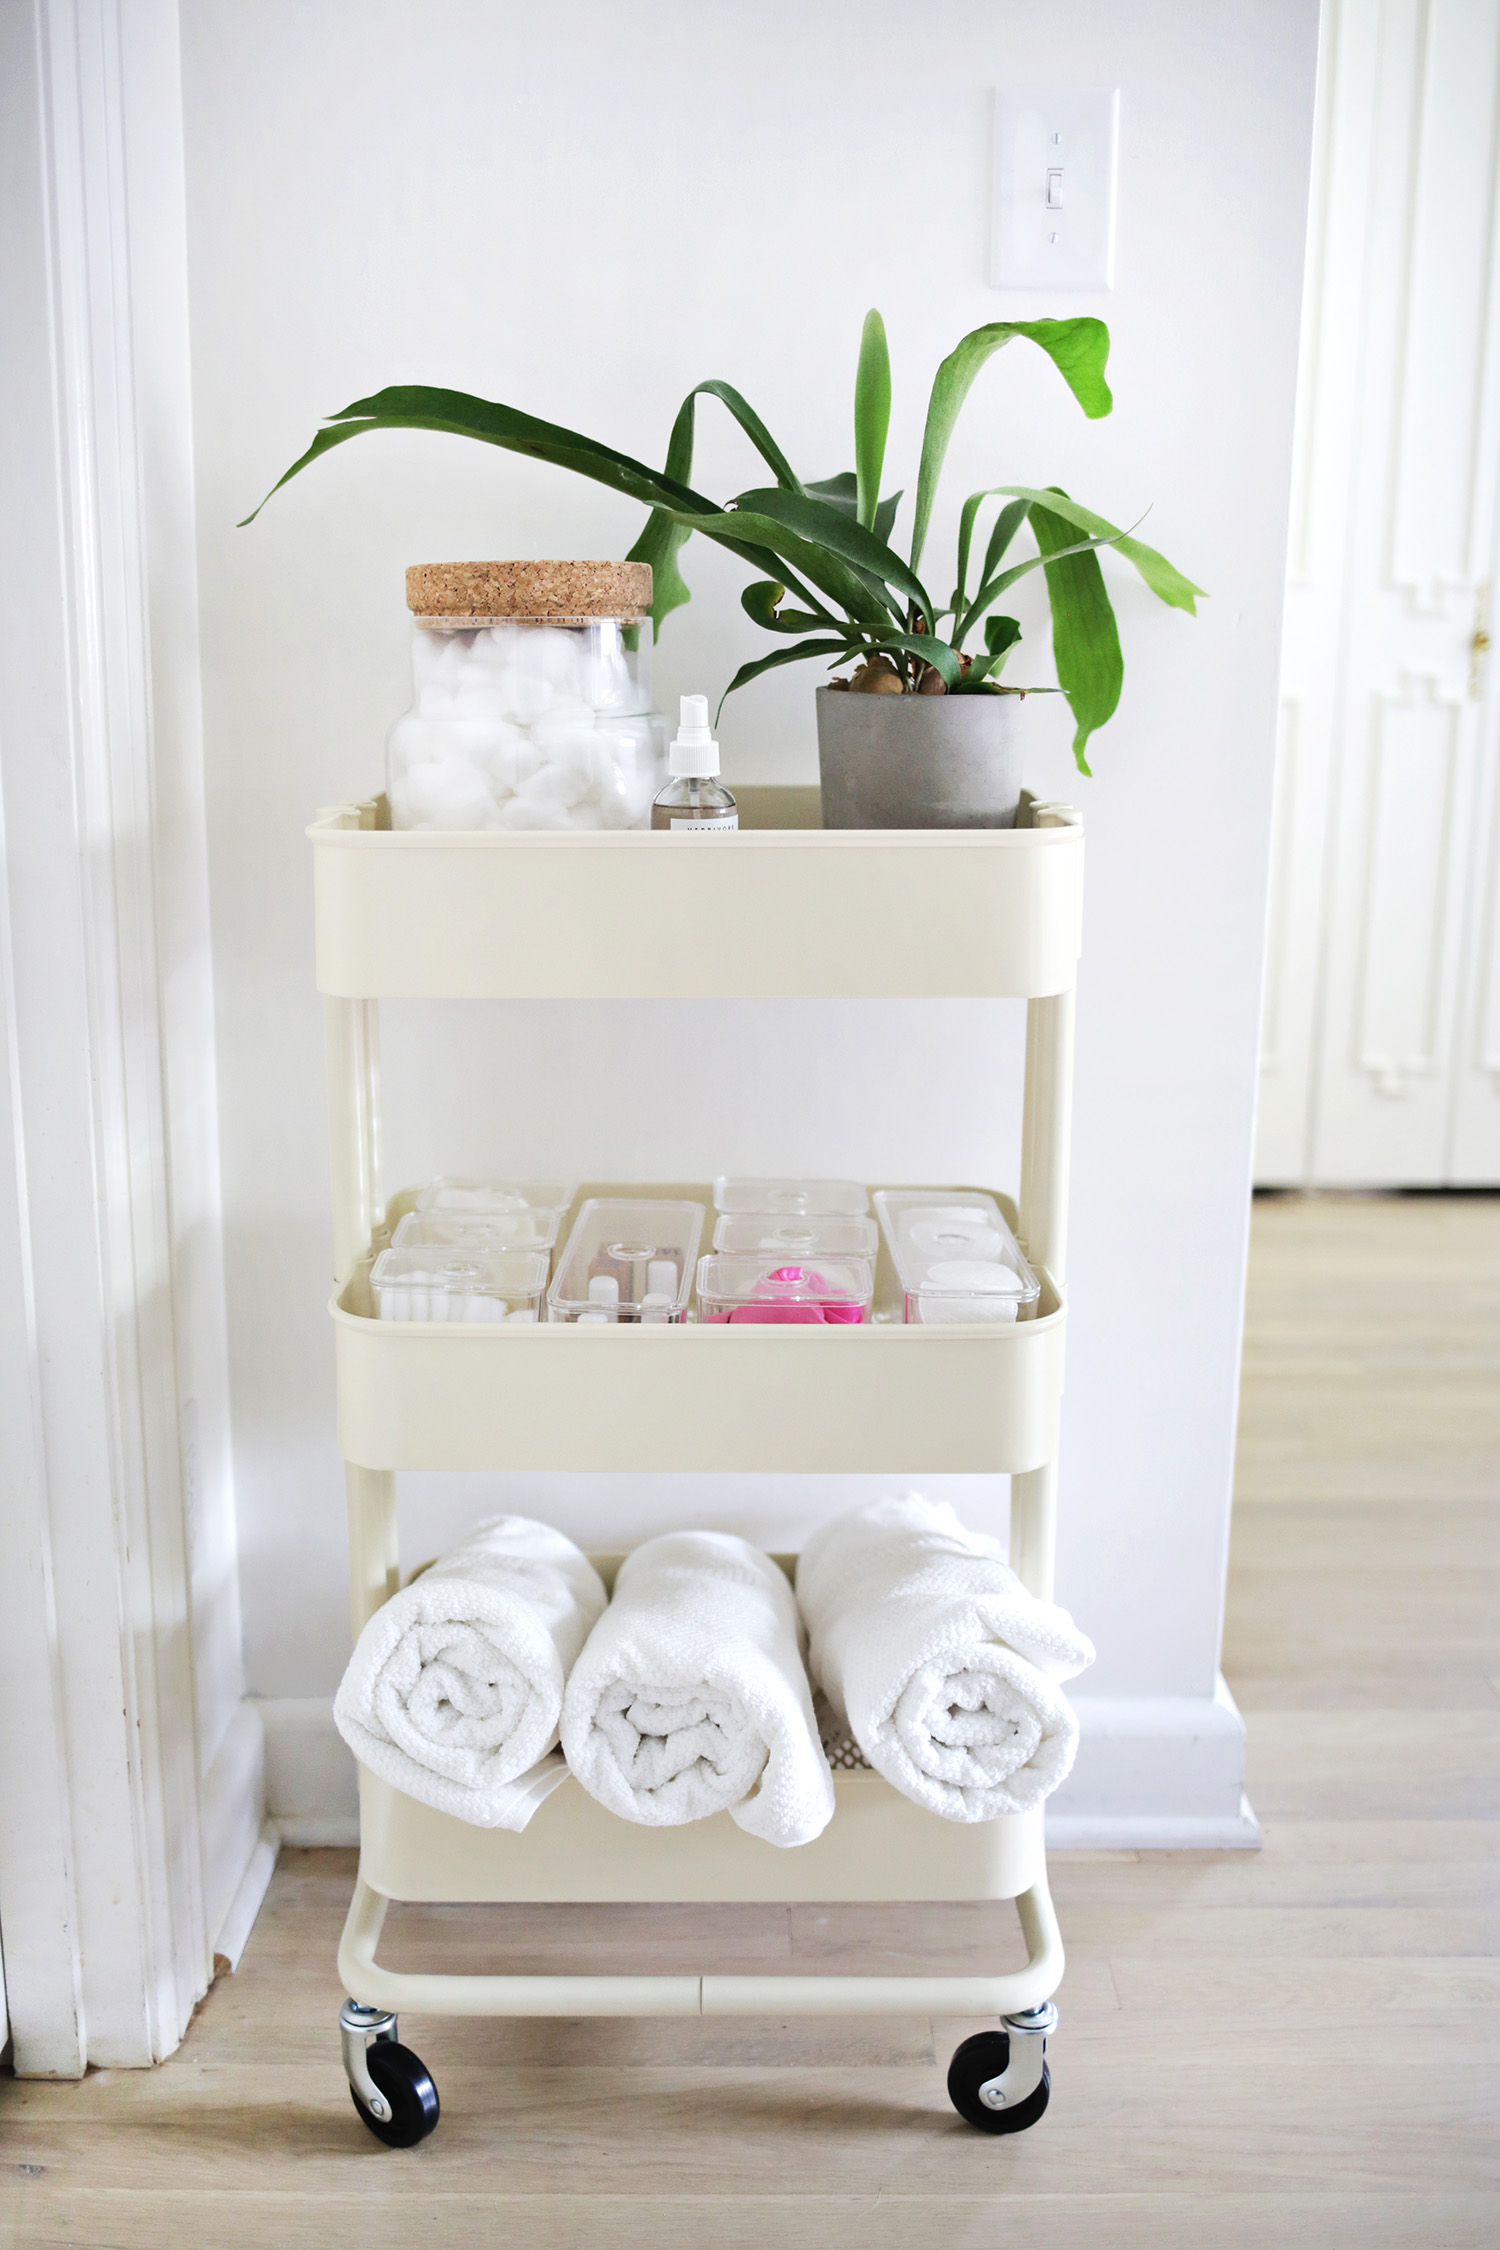 Bathroom Organization Tips